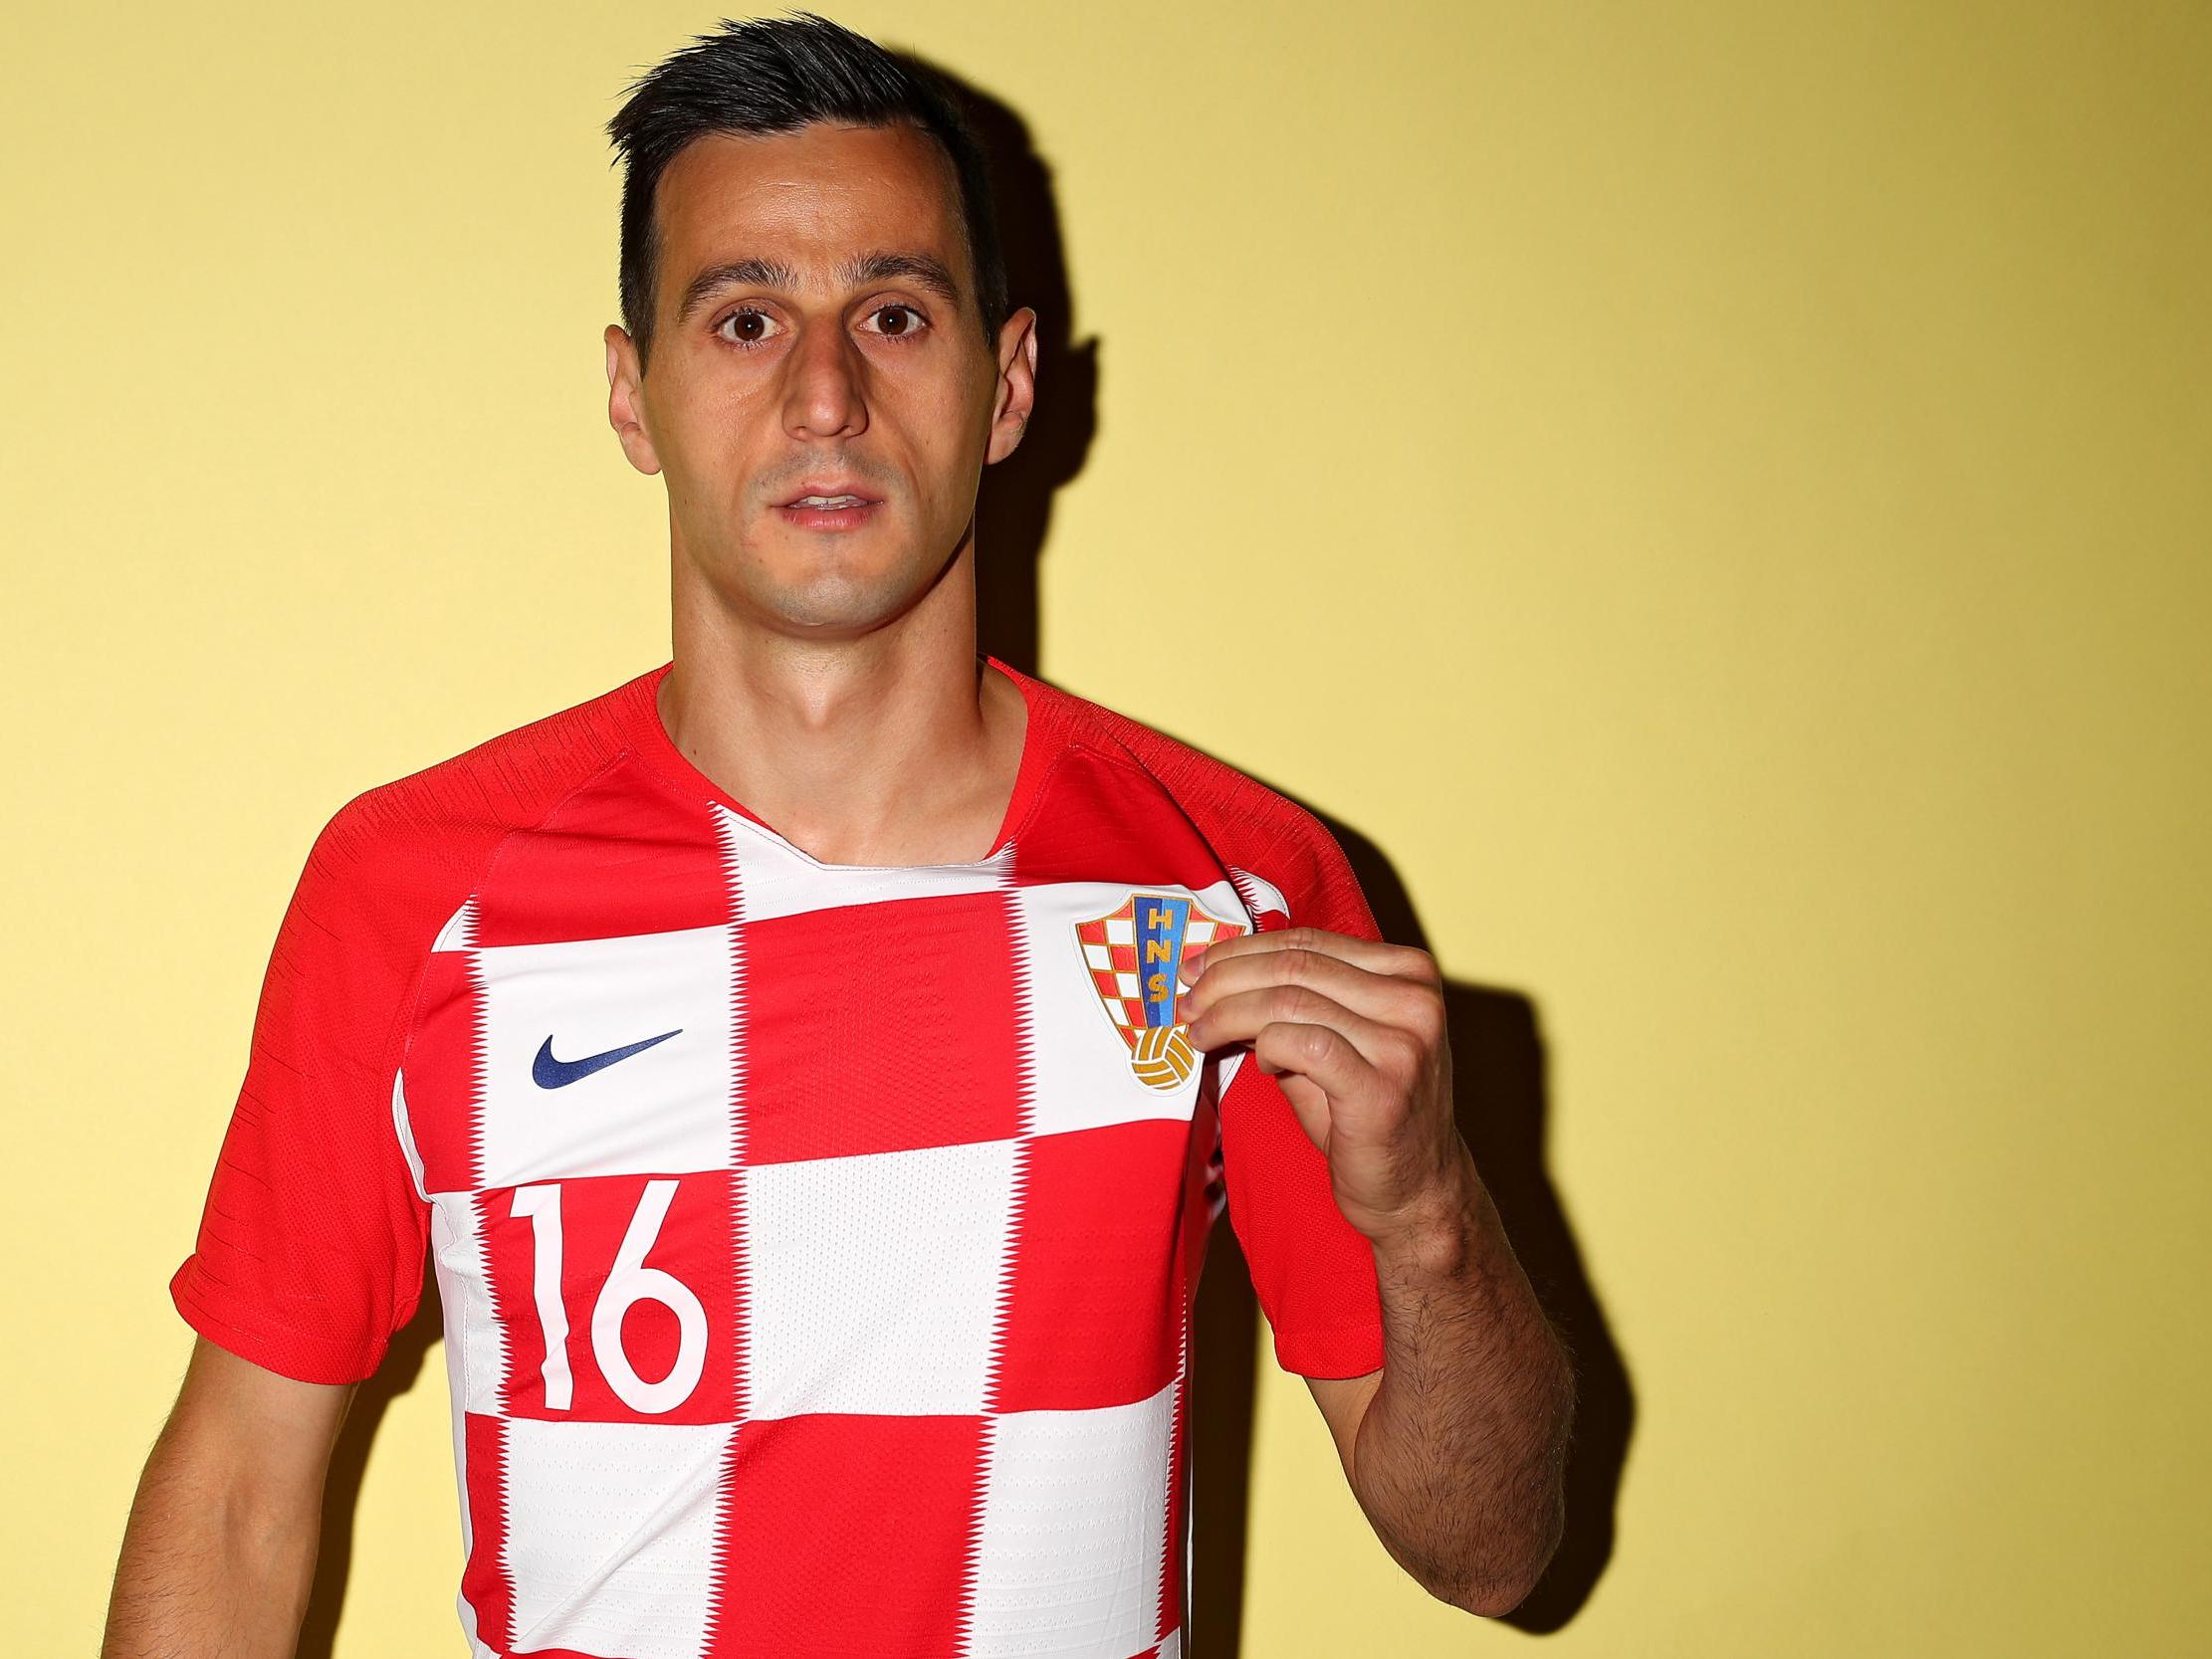 World Cup 2018: Nikola Kalinic refuses Croatian silver medal after being sent home during group stages